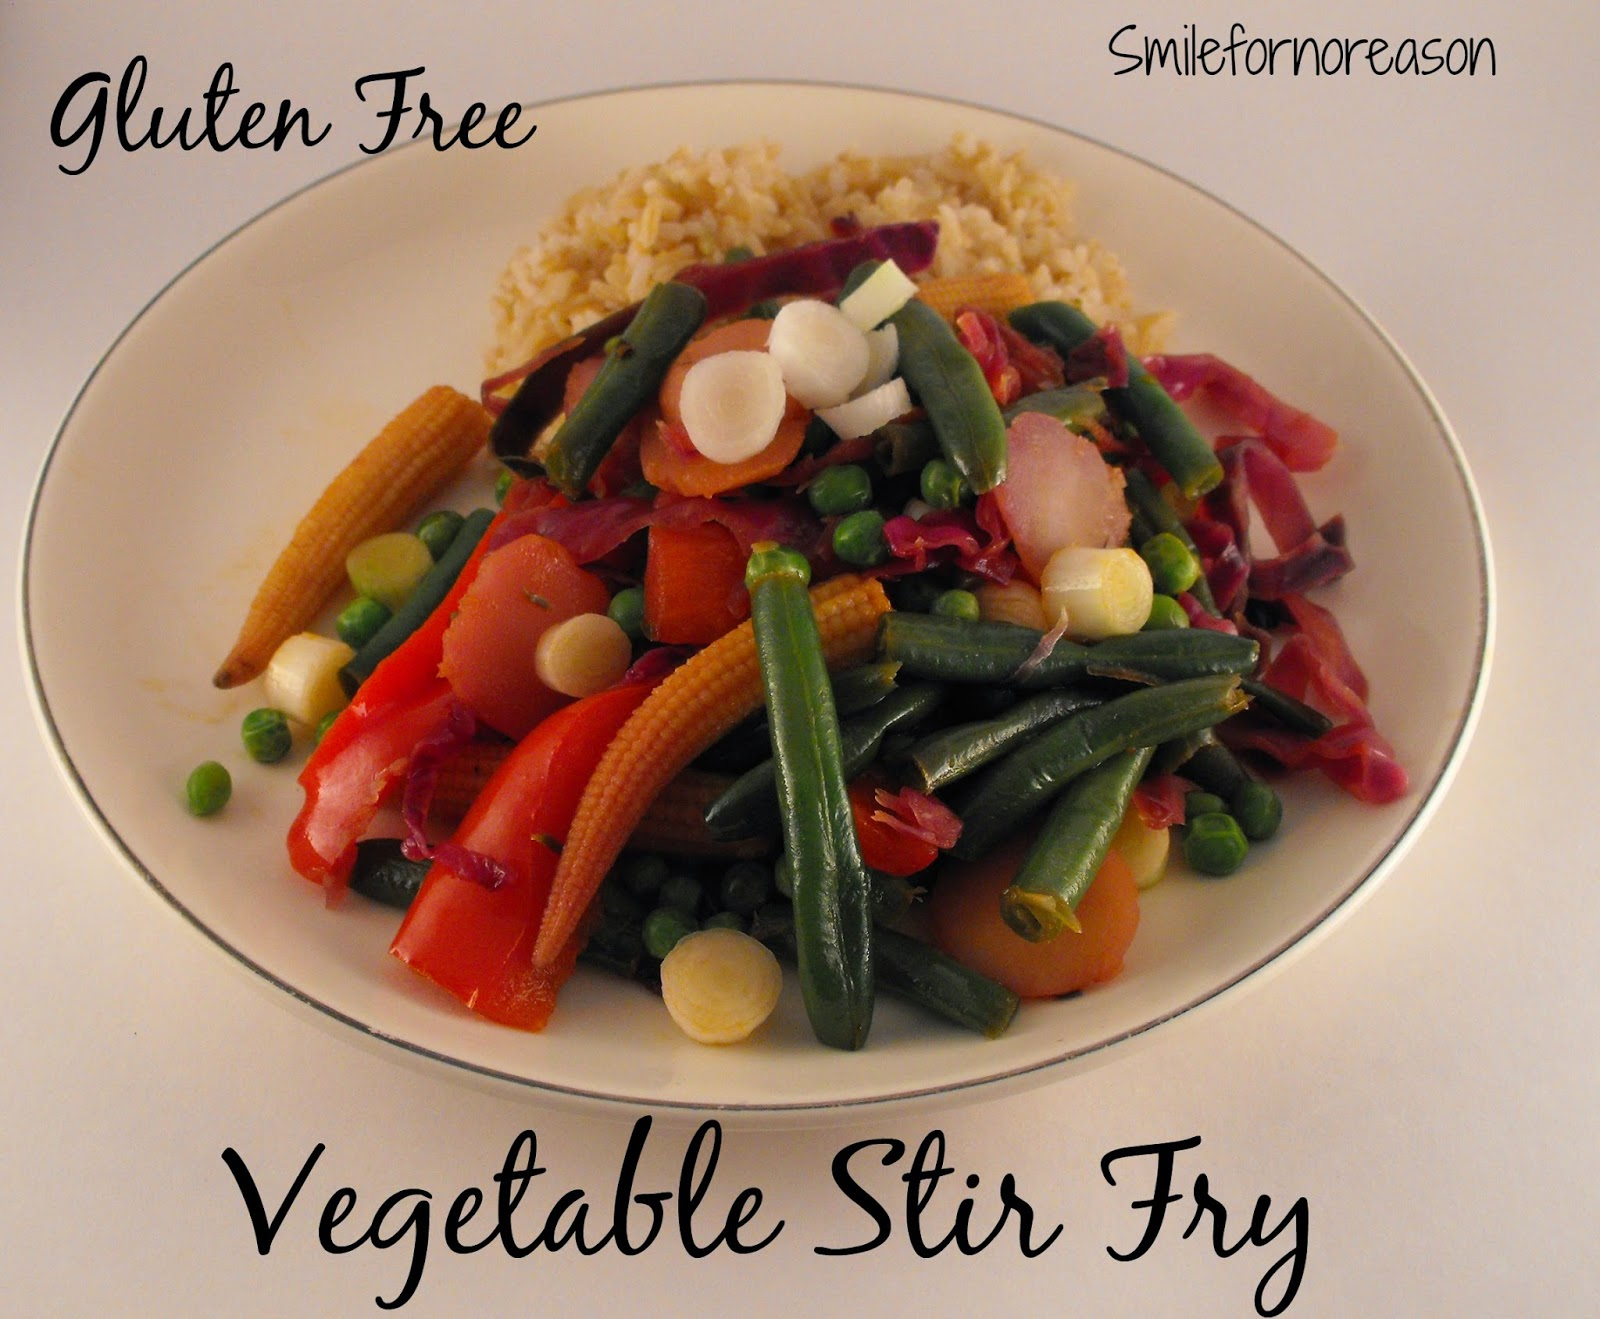 gluten fry vegetable stir fry